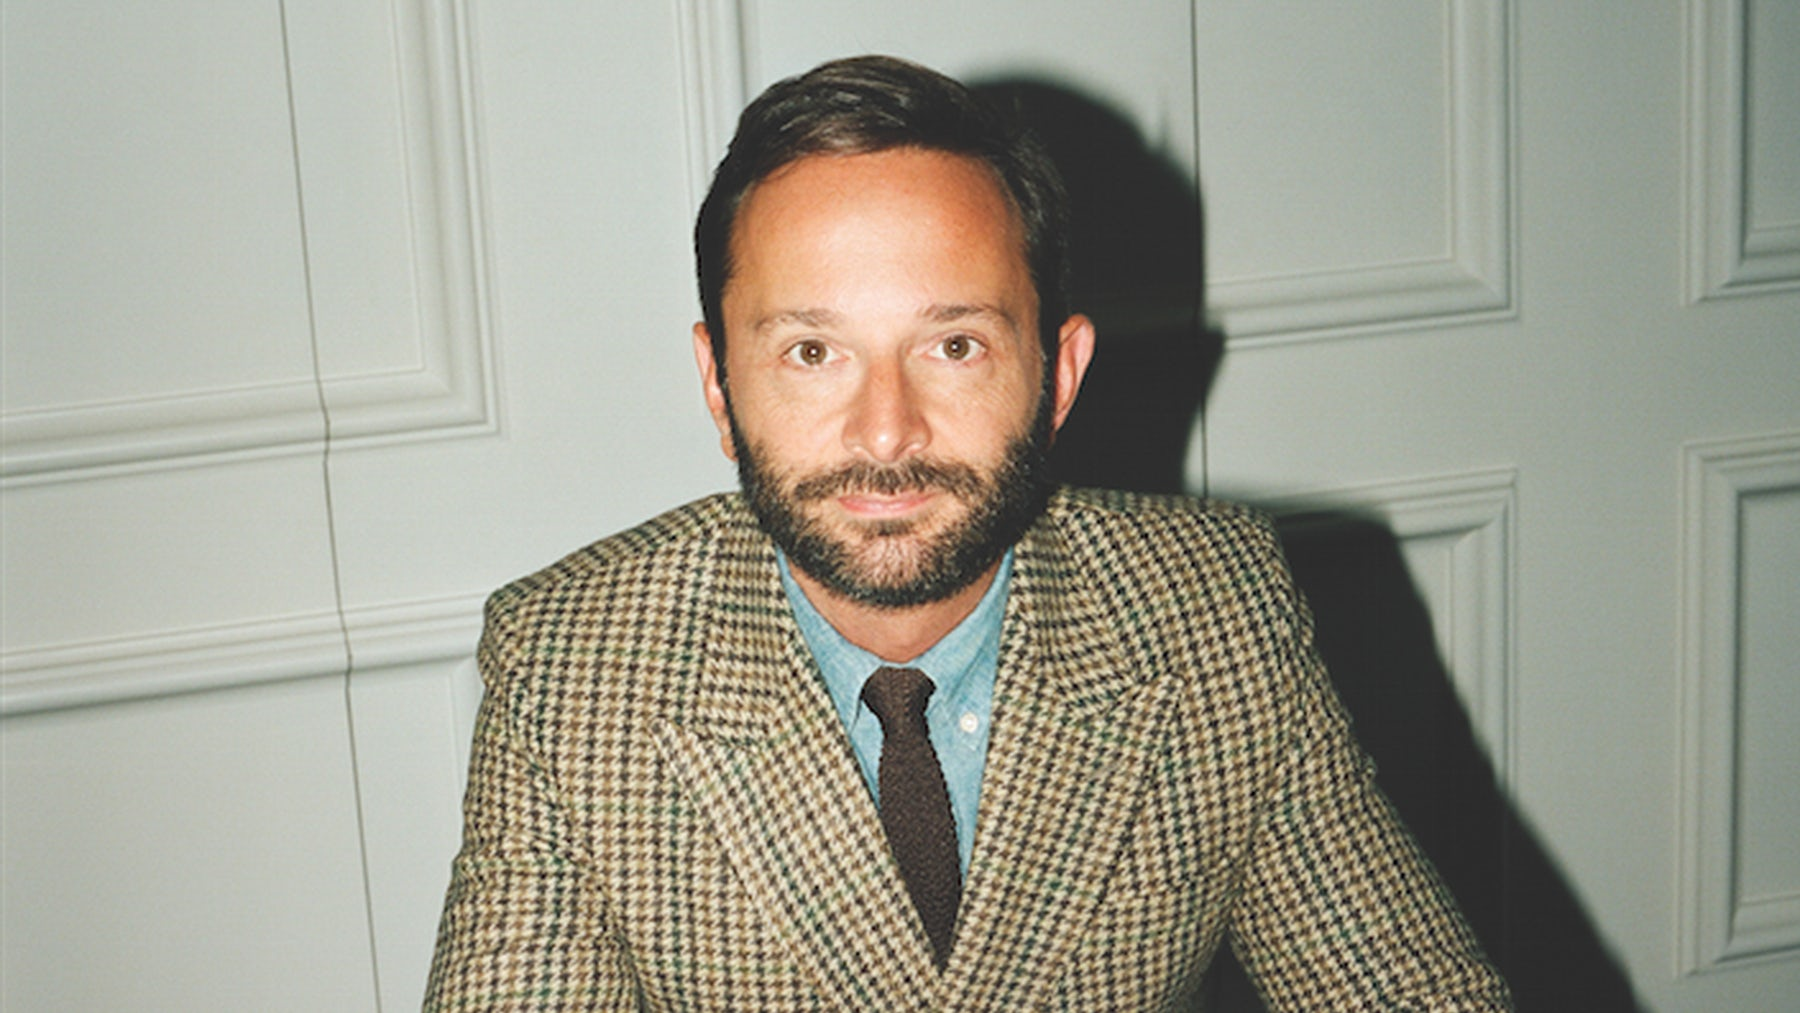 Power Moves | Mr Porter Editor Returns, Maiyet Names Creative Director, Coty CEO Exits